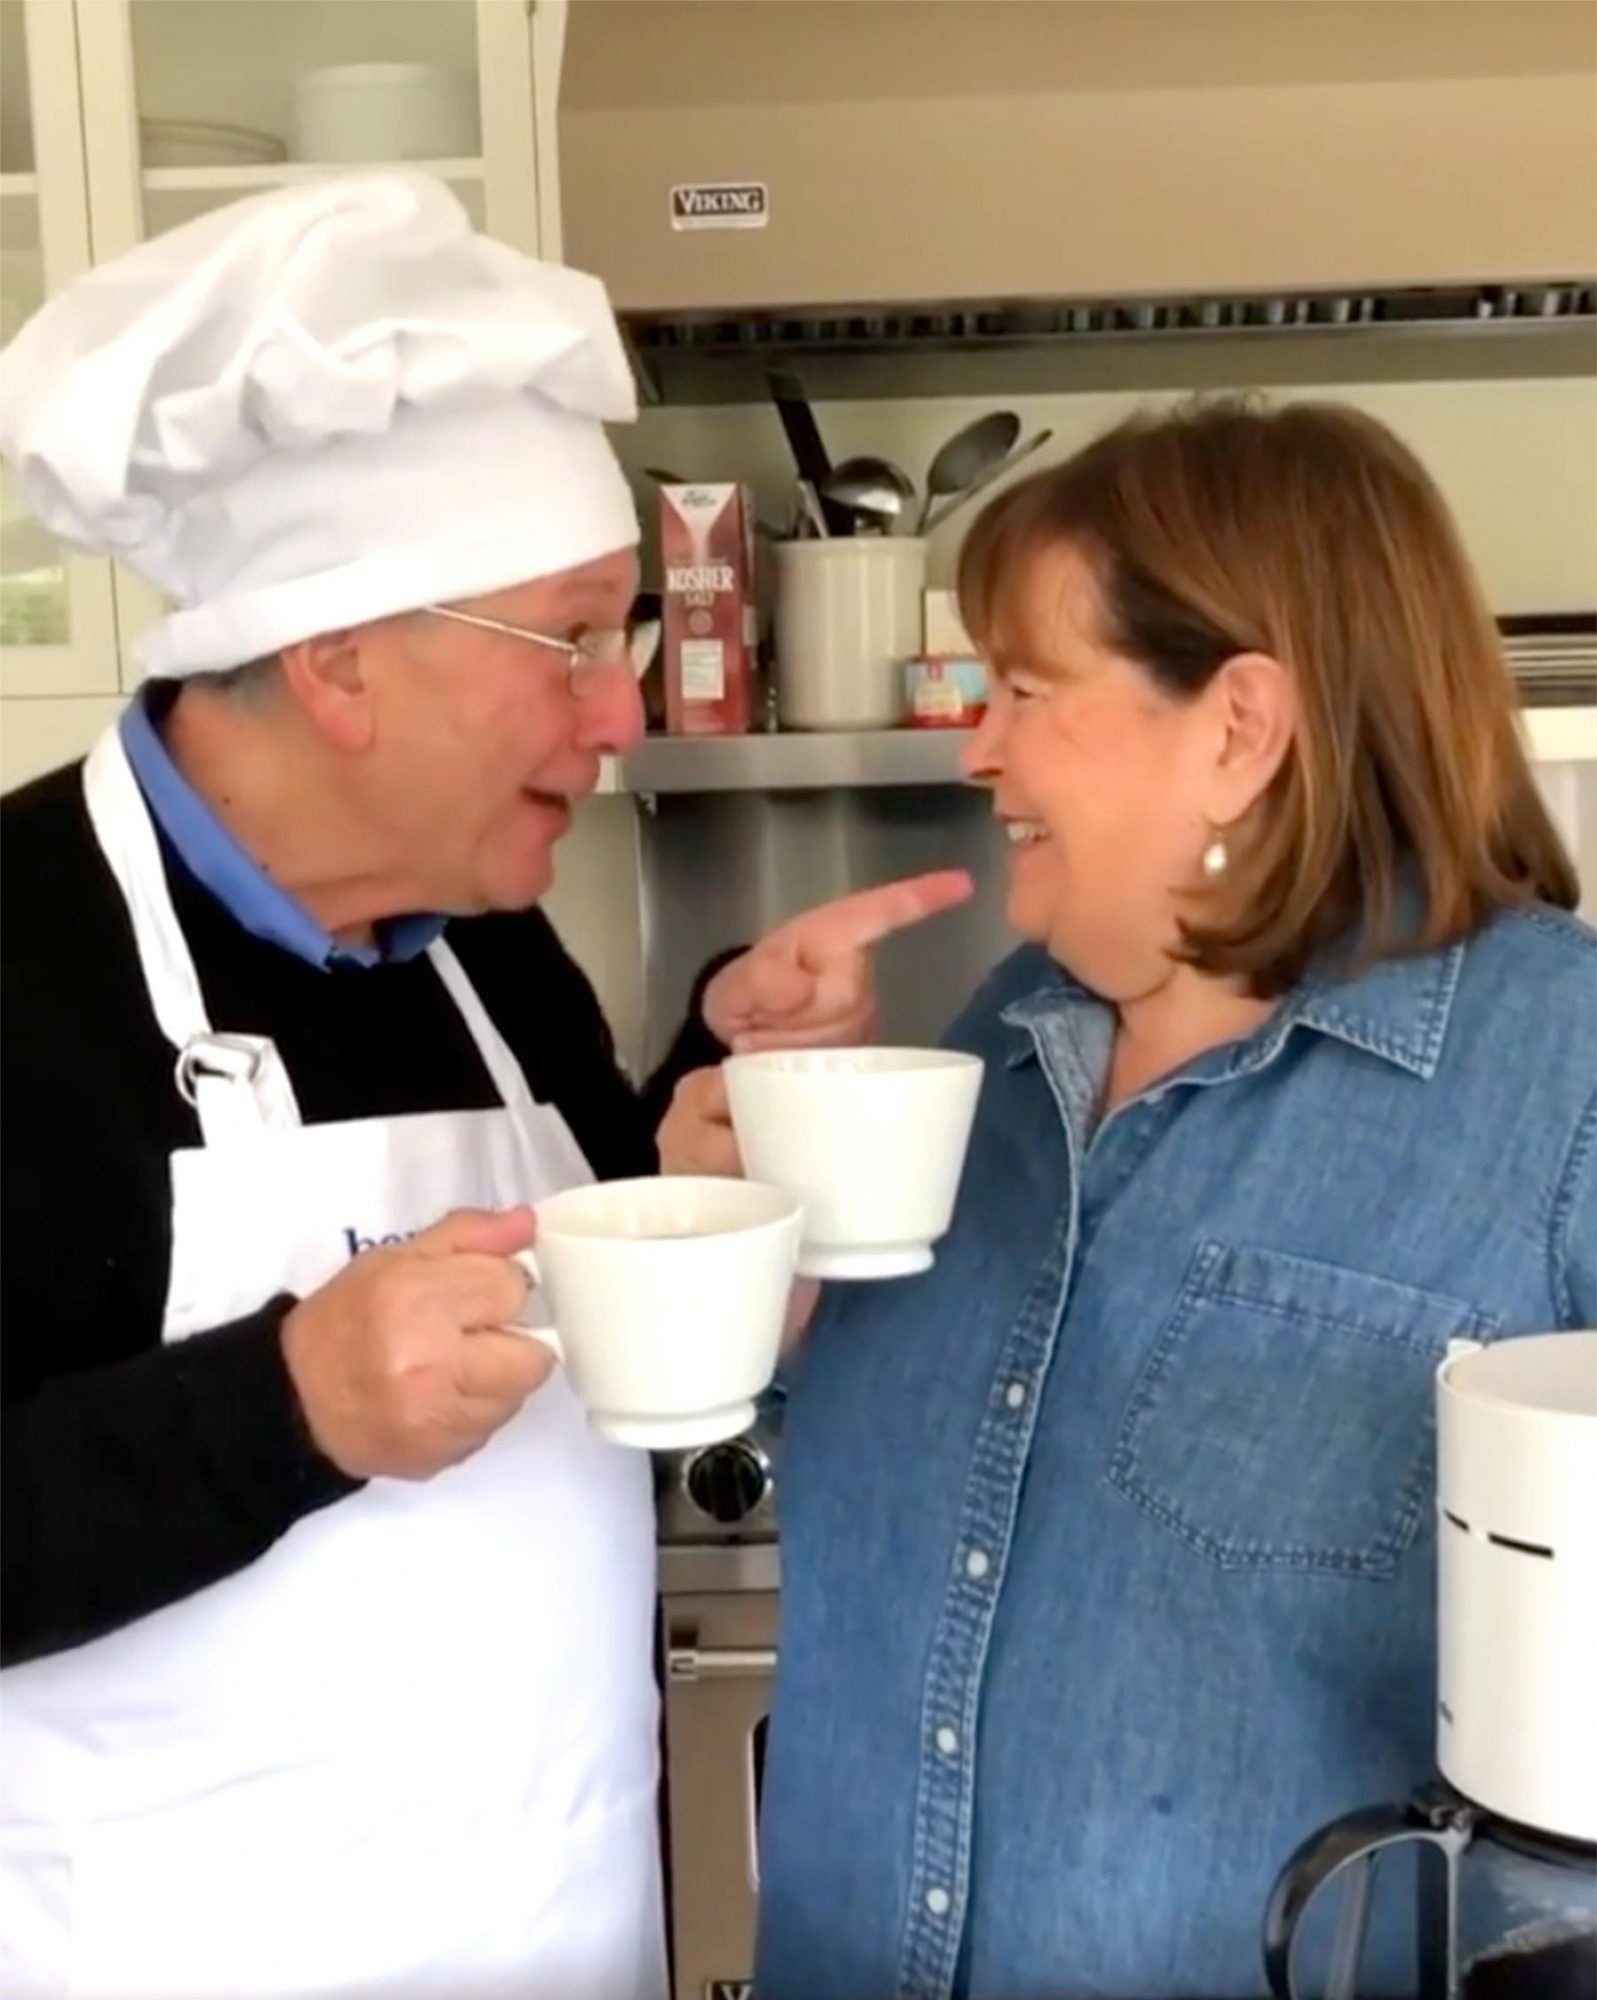 Ina Garten's Husband 'Chef Jeffrey' Adorably Shows How to Make 'the Perfect Cup of Coffee'